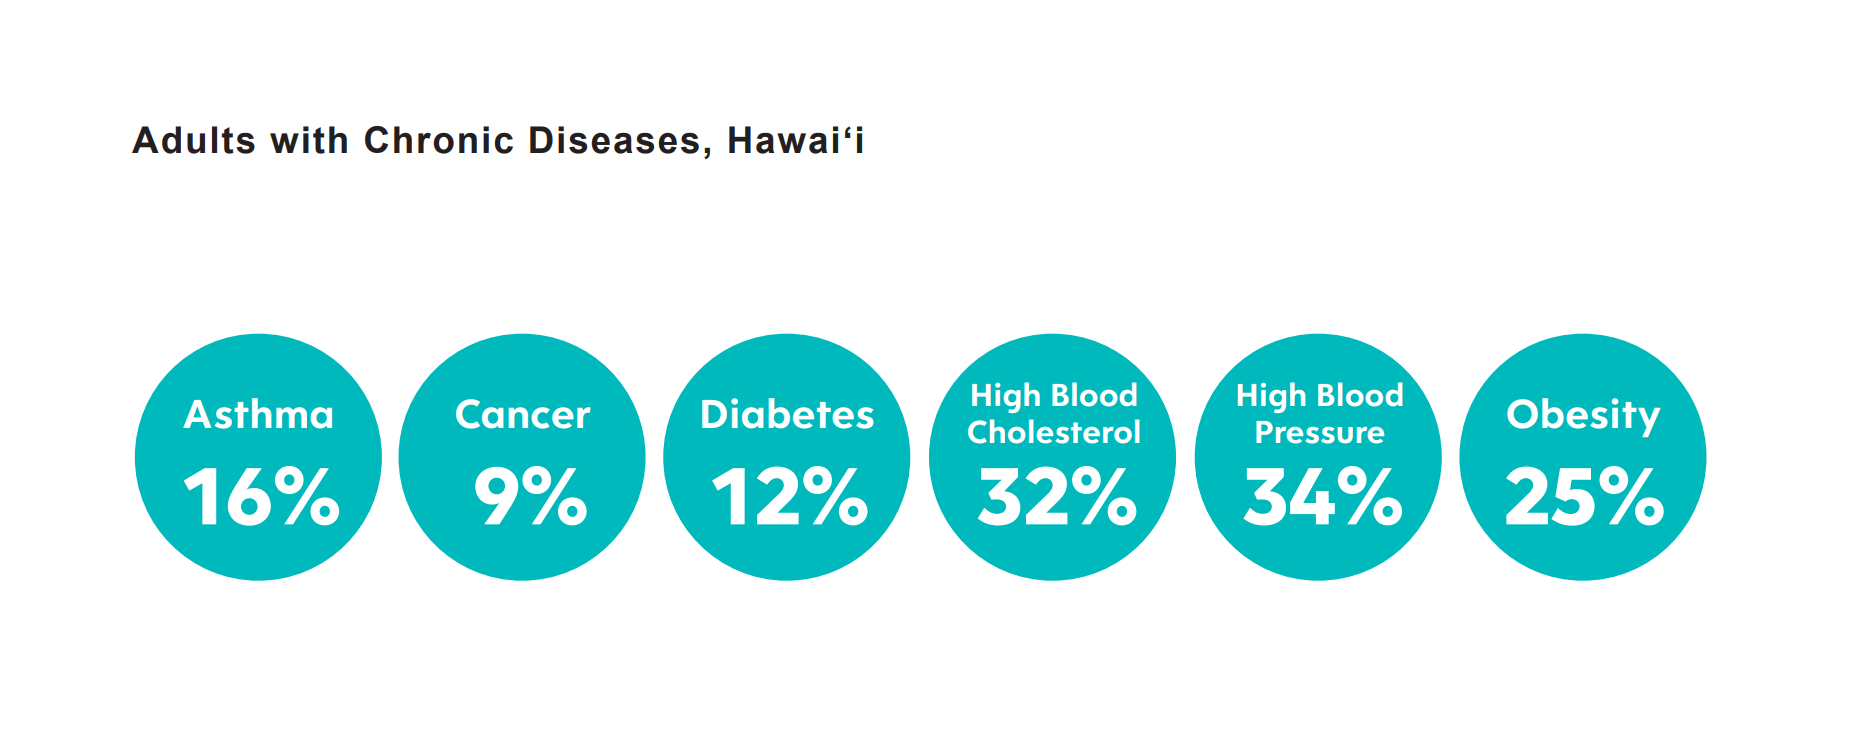 Adults with Chronic Diseases, Hawaii, Asthma 16%, Cancer 9%, Diabetes 12%, High Blood Cholesterol 32%, High Blood Pressure 34%, Obesity 25%